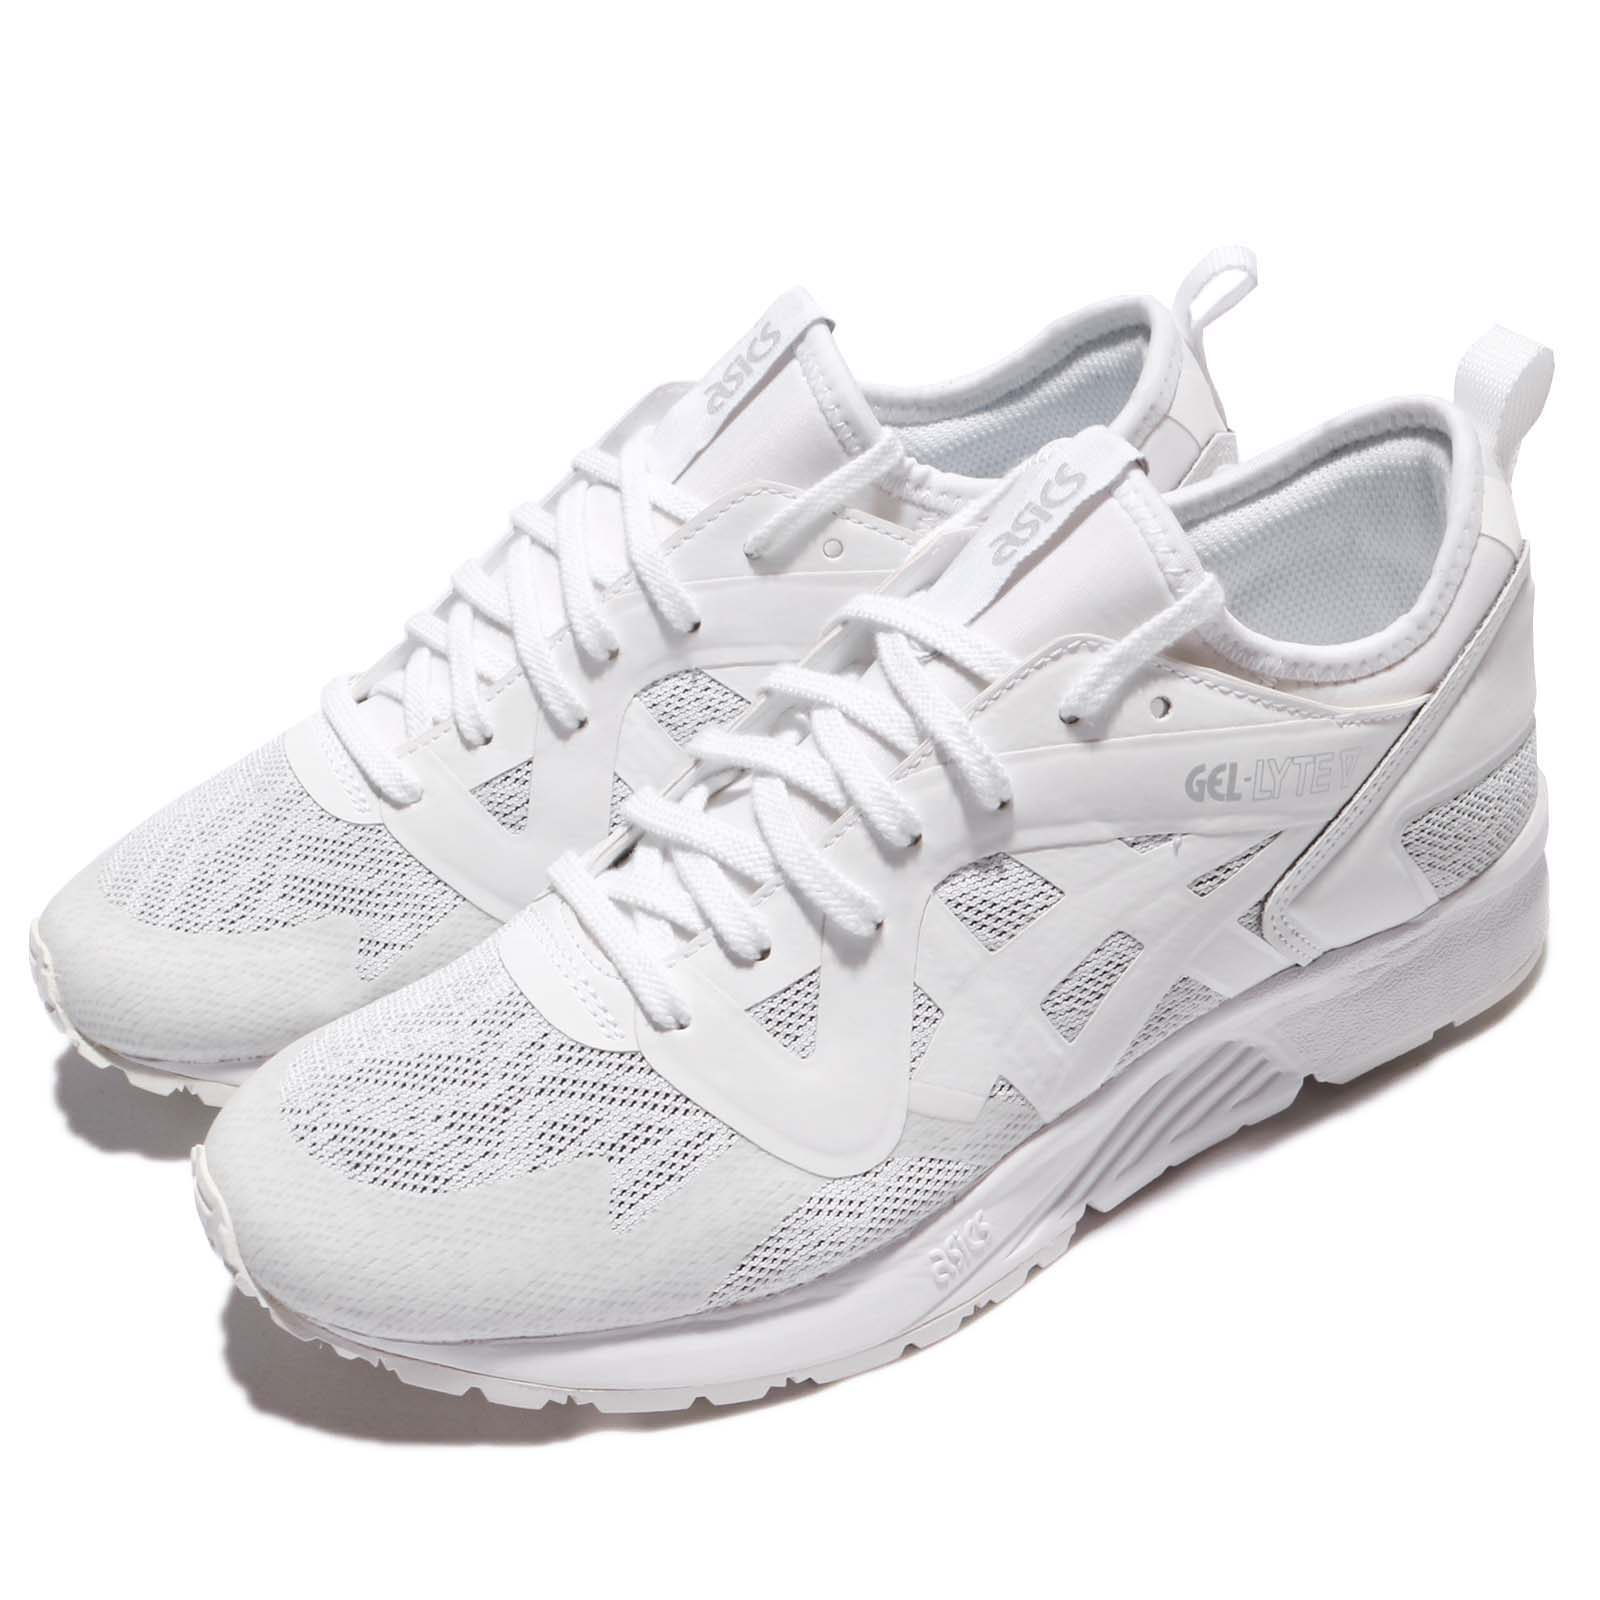 d050dcdcd49d Details about Asics Tiger Gel-Lyte V NS White Grey Women Running Shoes  Sneakers HY7H8-0101